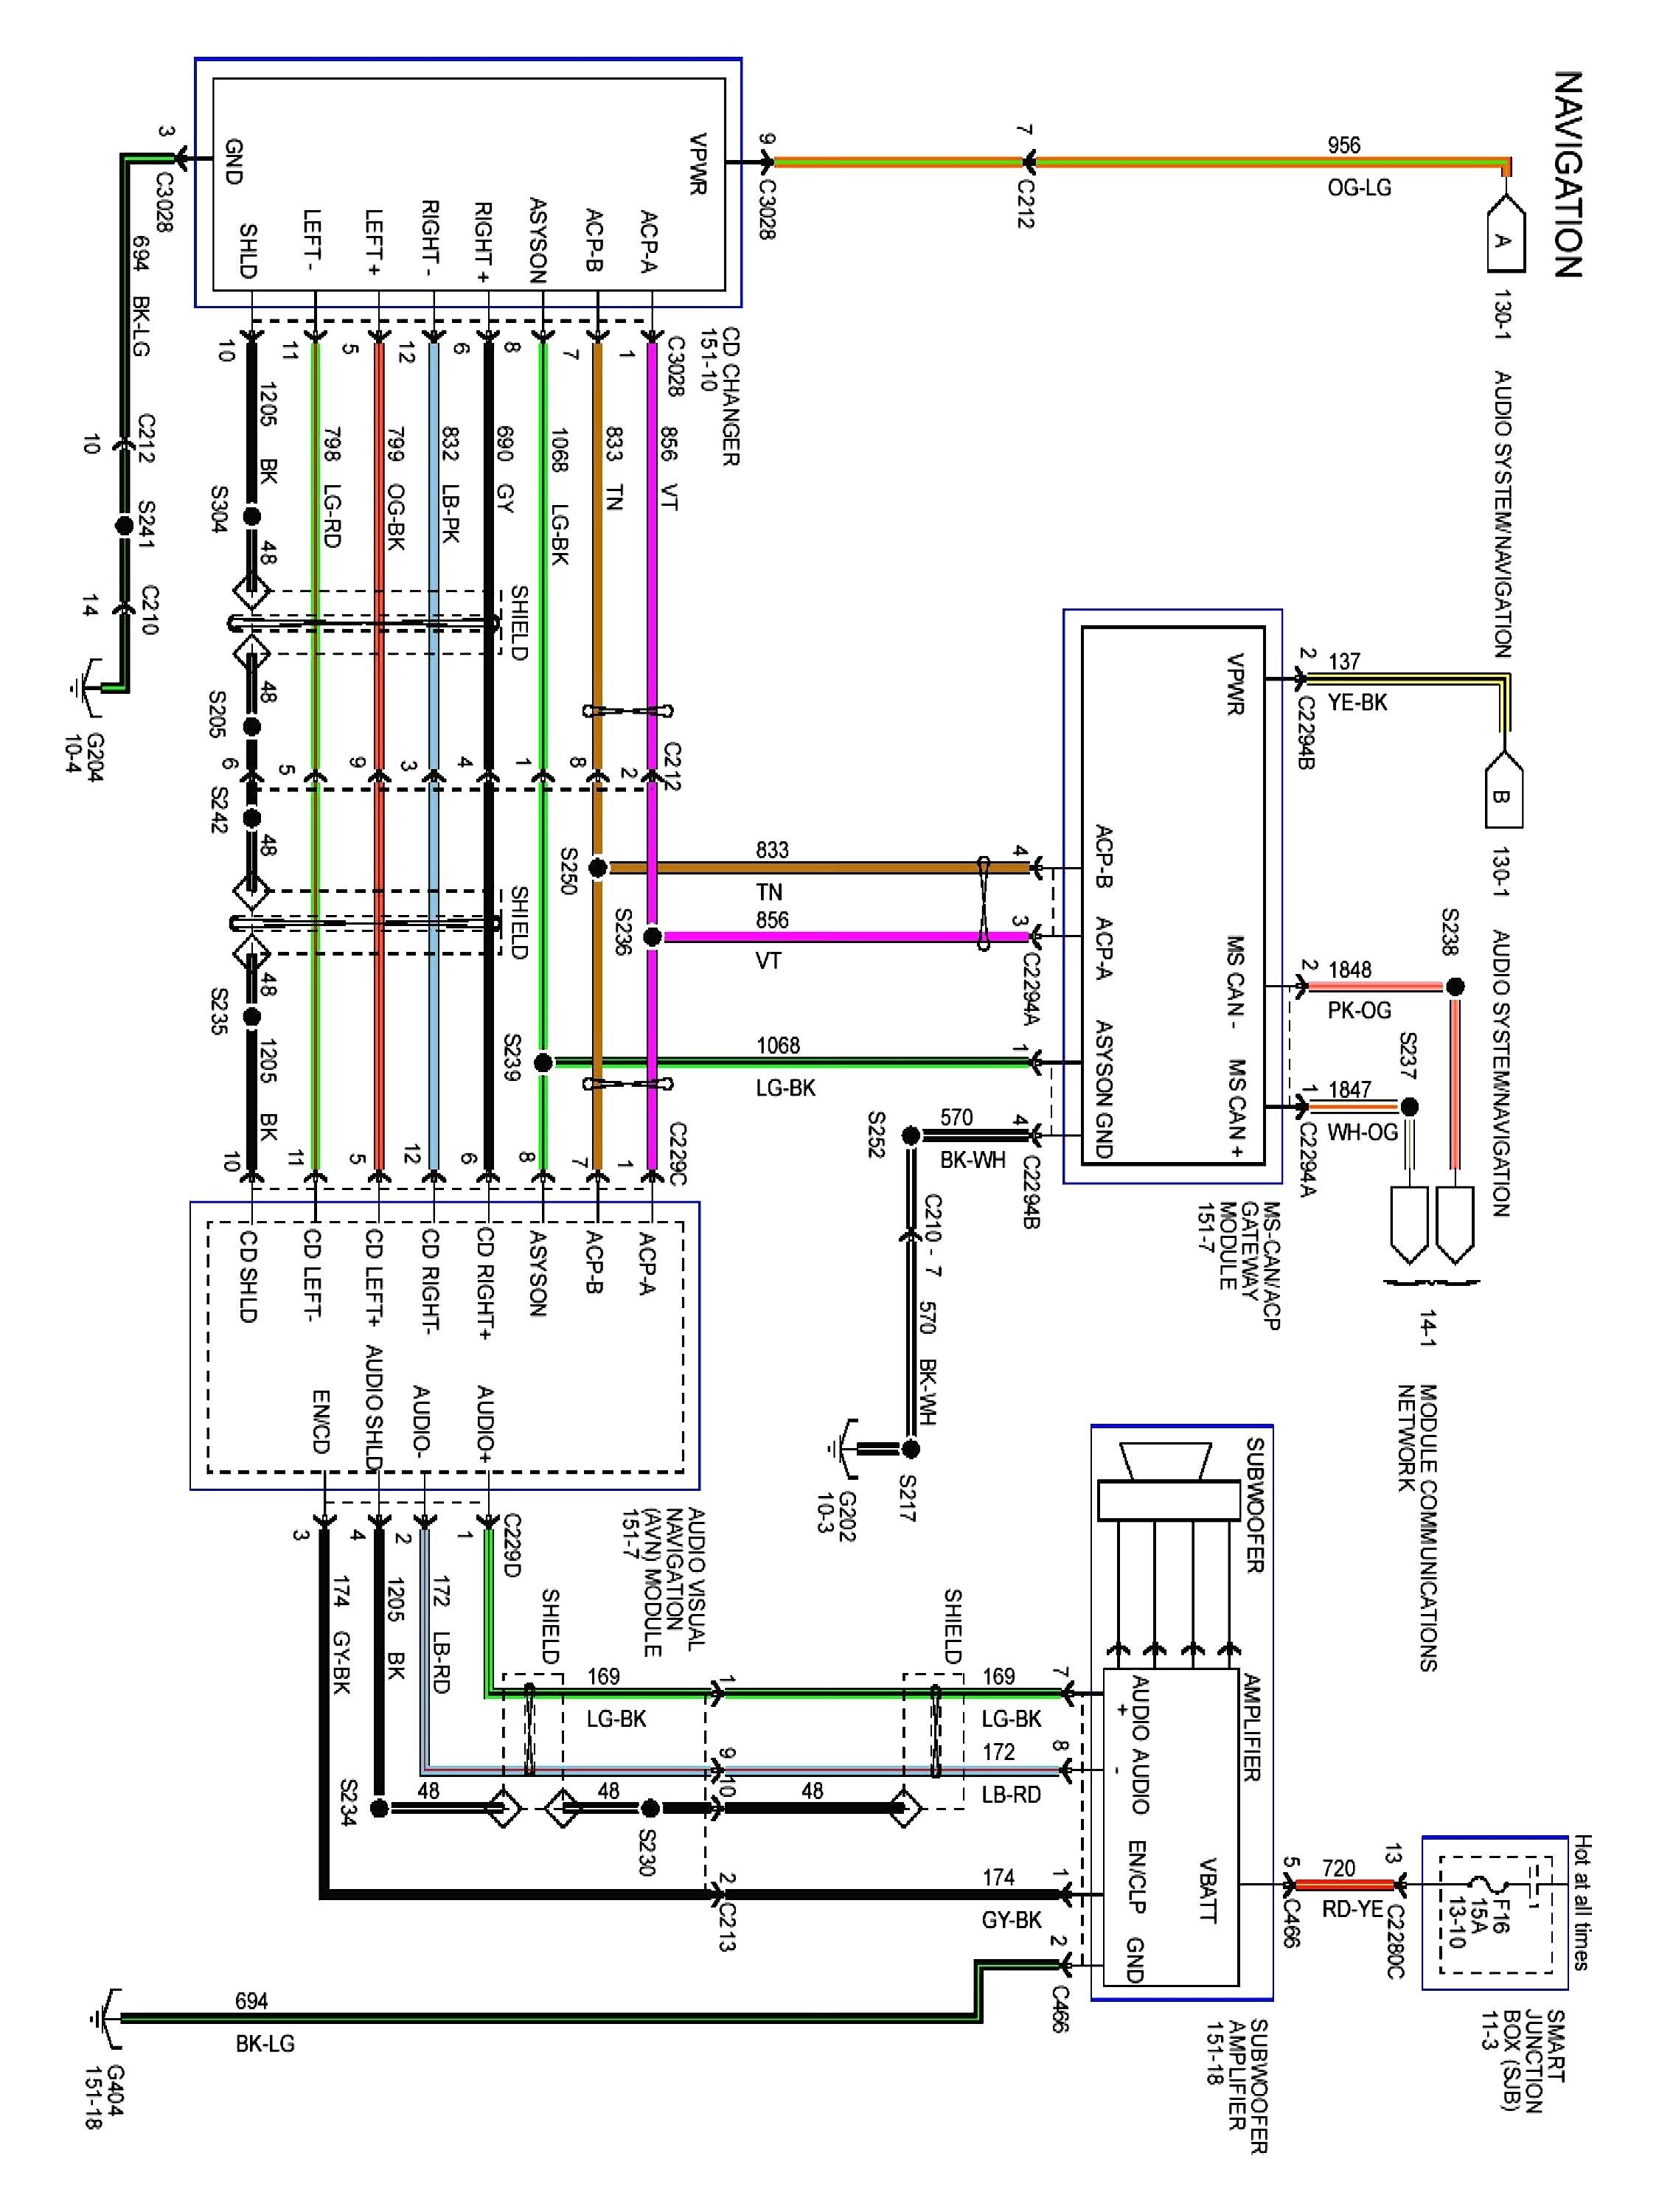 ram trailer wiring harness diagram 2011 dodge trailer wiring diagram liar fuse12 klictravel nl  2011 dodge trailer wiring diagram